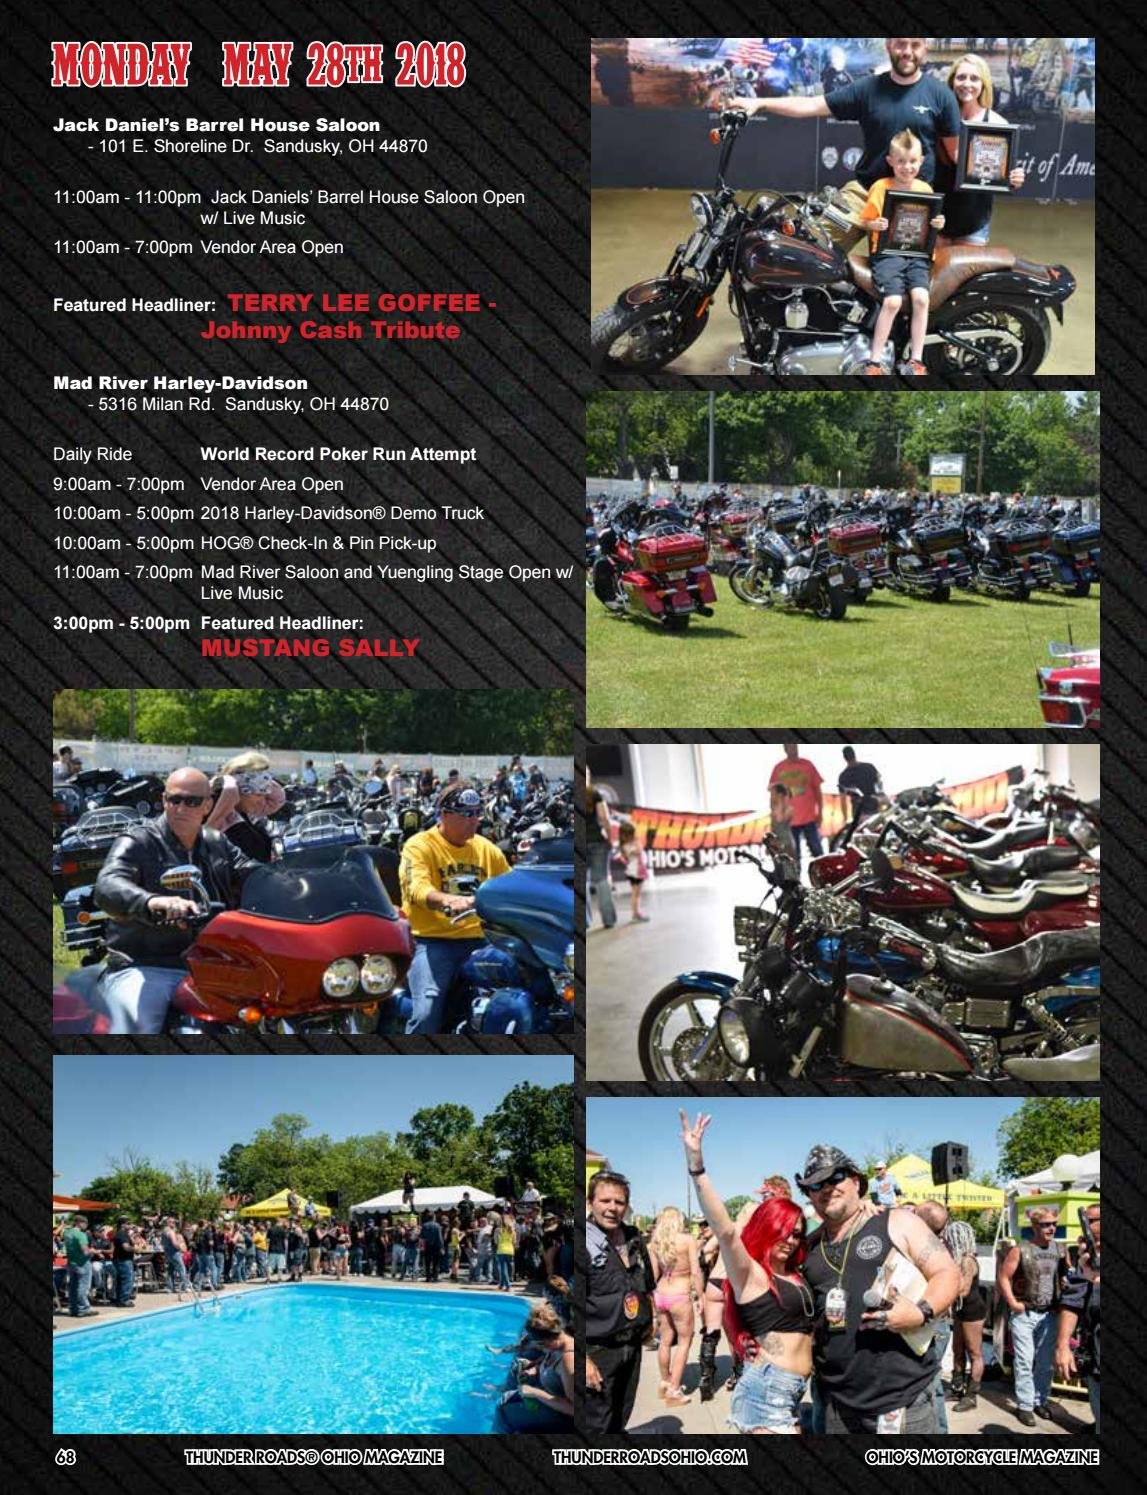 Thunder road house poker run golden nugget casino tukwila menu